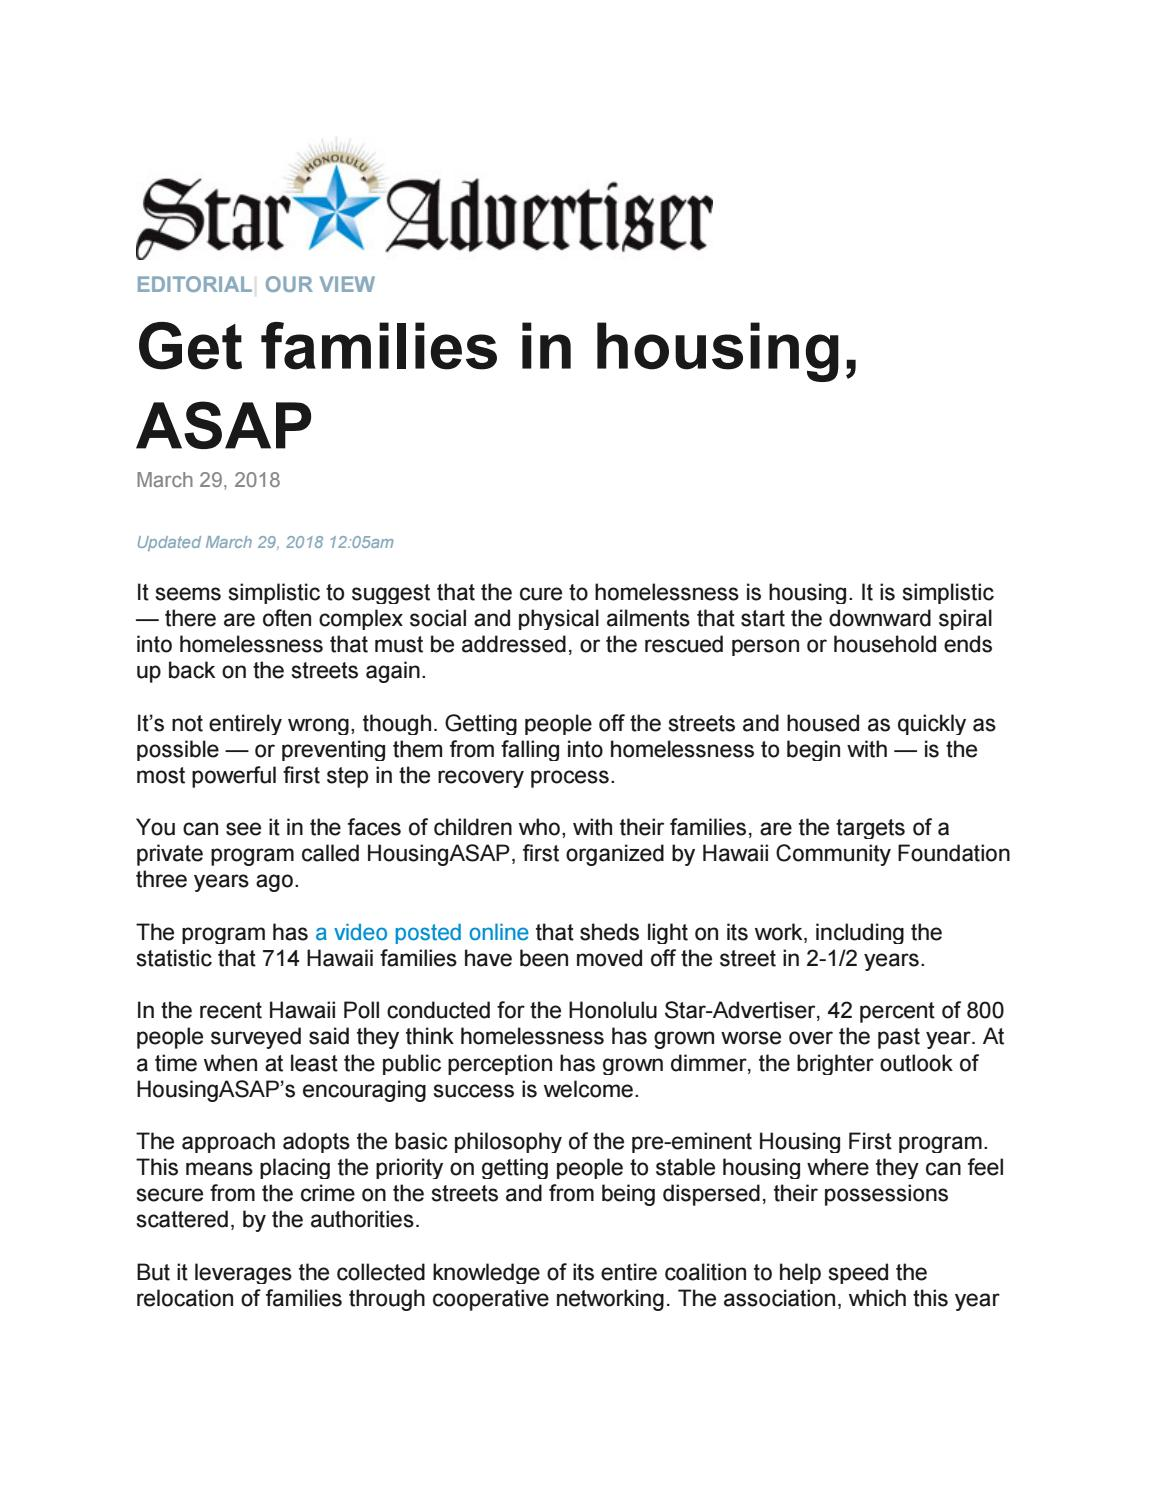 Housing ASAP Editorial 03/29/2018 by Hawaii Community